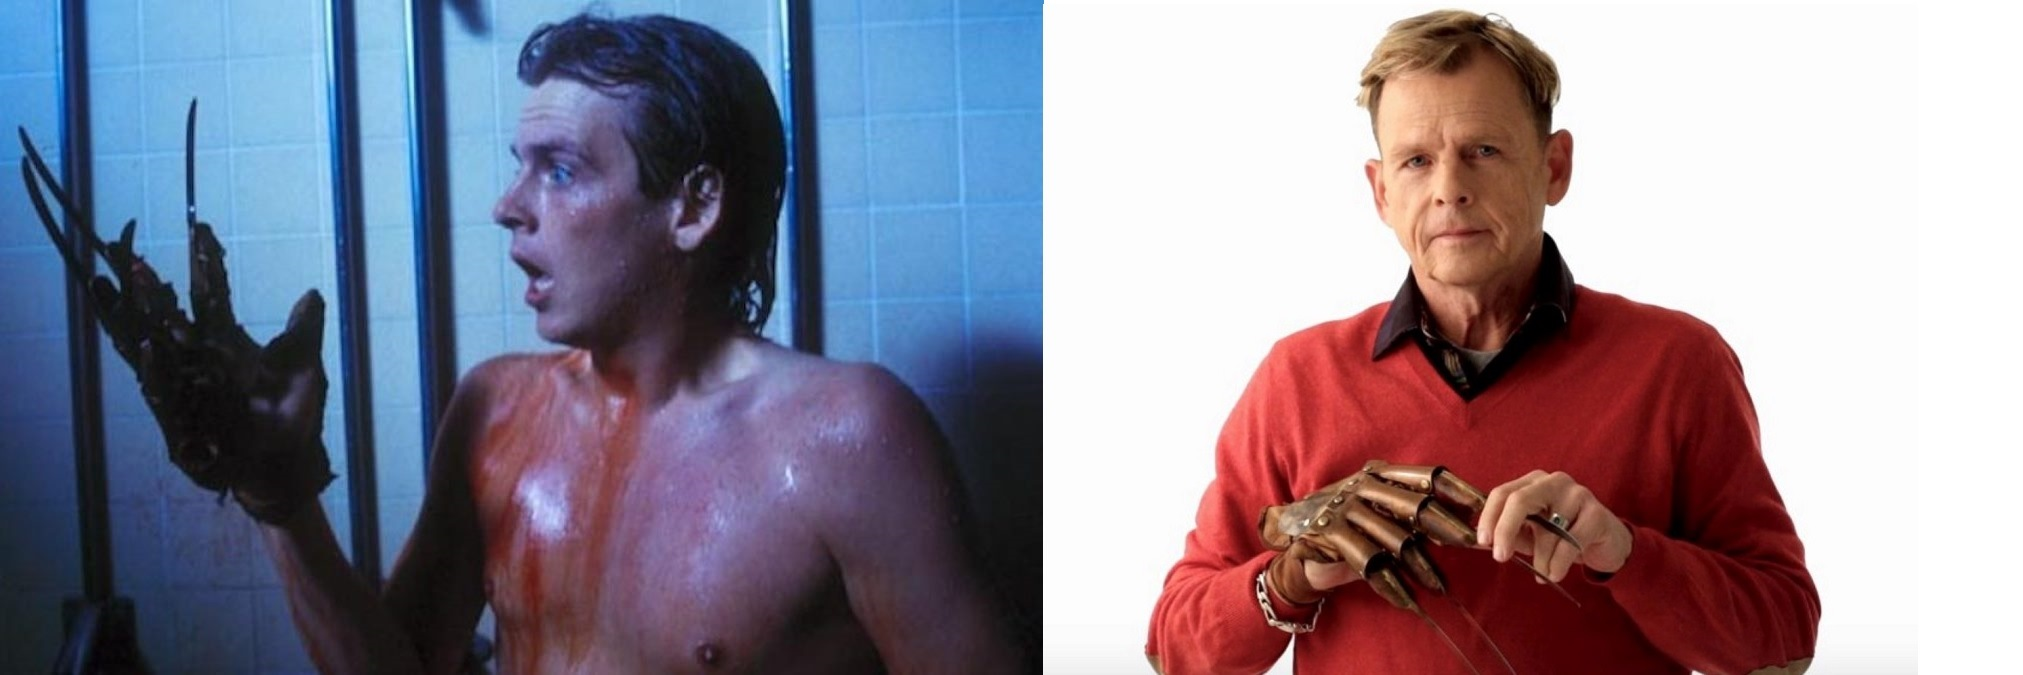 Mark Patton in 1985 in A Nightmare on Elm Street Part II: Freddy's Revenge and Mark Patton in 2019 in Scream Queen! My Nightmare on Elm Street (2019)